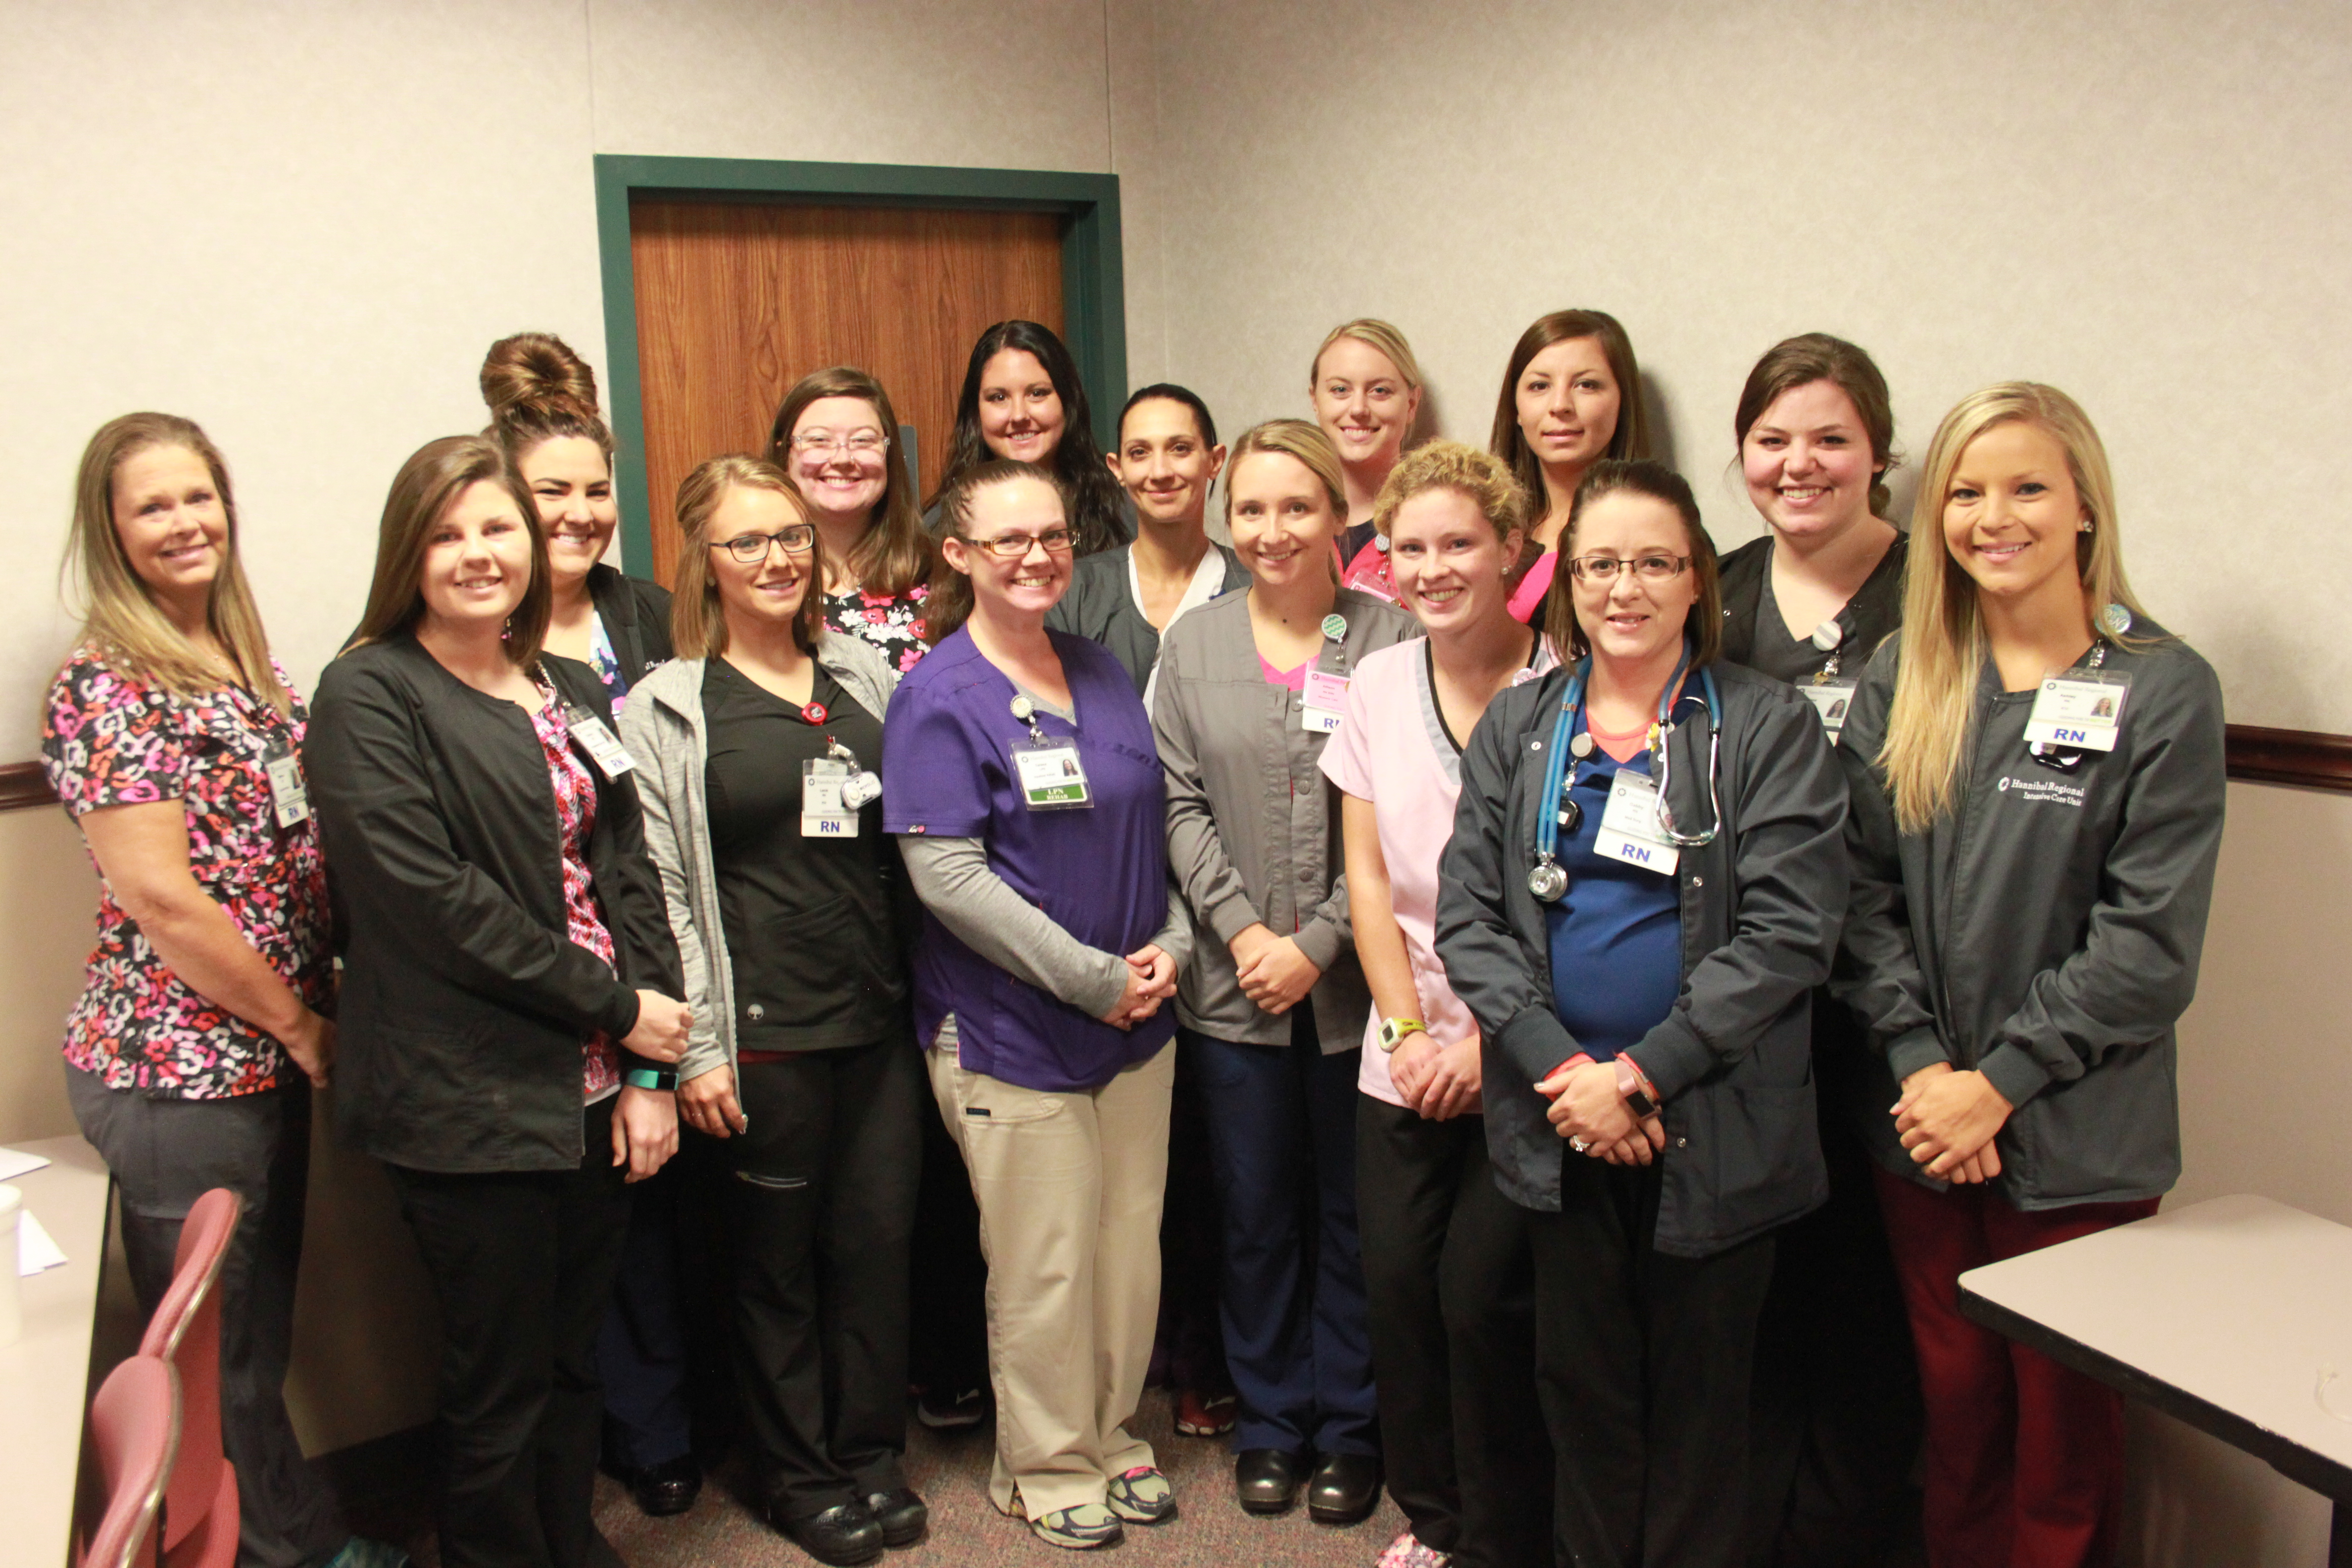 Nurse Residency Program Begins at Hannibal Regional | IV